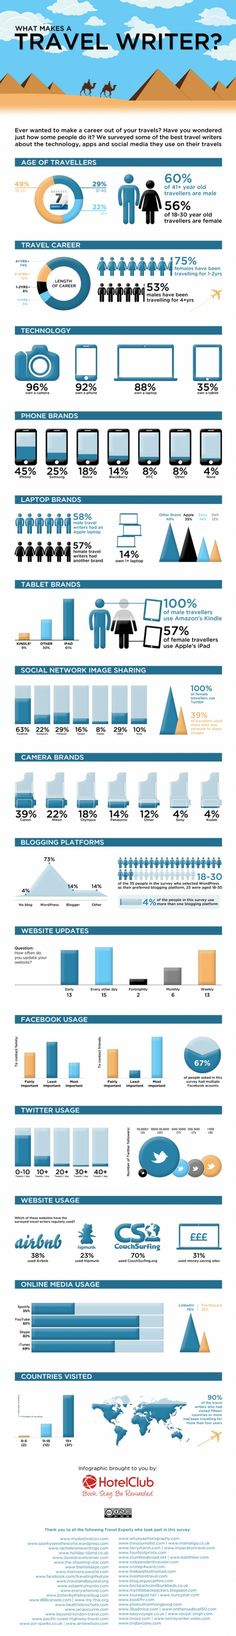 Whta makes a travel writer? #infographic